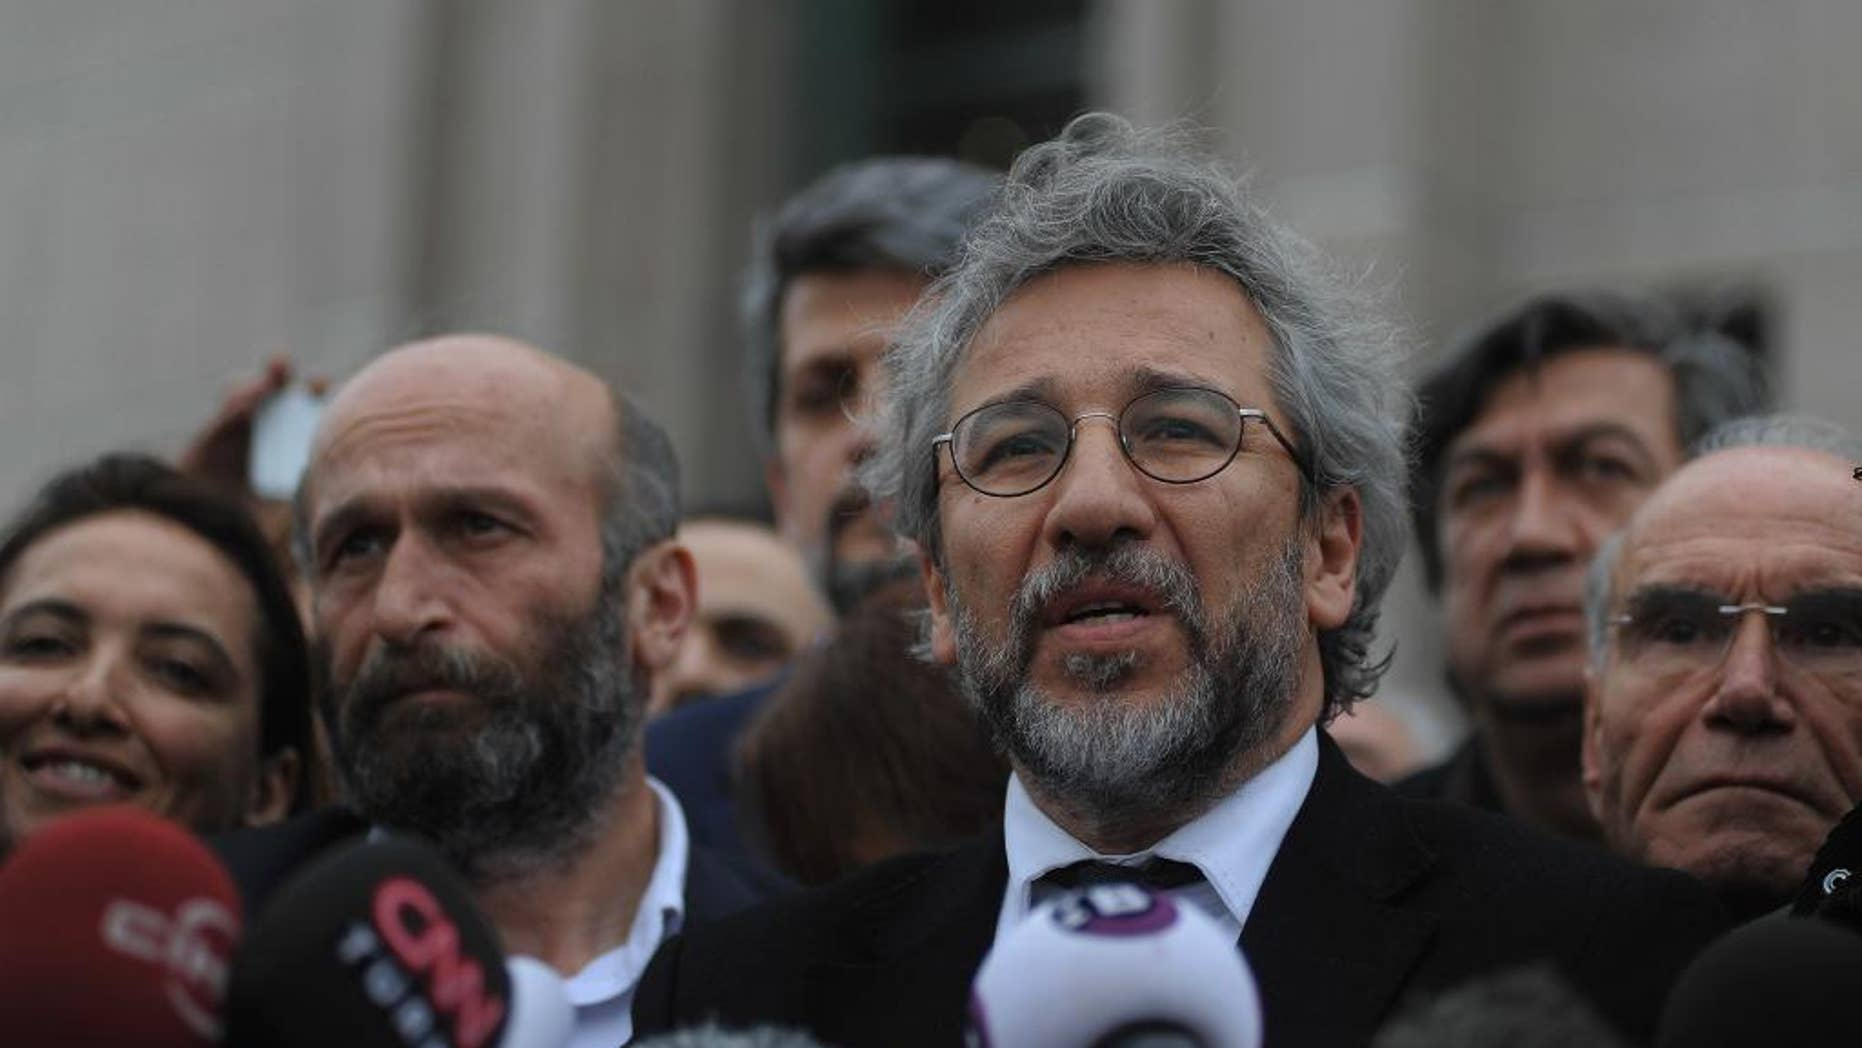 Can Dundar, the editor-in-chief of opposition newspaper Cumhuriyet, right, and Erdem Gul,  left, the paper's Ankara representative, speak to the media after their trial in Istanbul, Friday, March 25, 2016. The trial of two Turkish journalists accused of revealing state secrets and helping a terrorism organization over their reports on alleged government-arms smuggling to Syrian rebels was adjourned on Friday after opposition lawmakers refused to leave the courthouse in defiance of a controversial ruling to proceed behind closed doors.(AP Photo/Omer Kuscu)